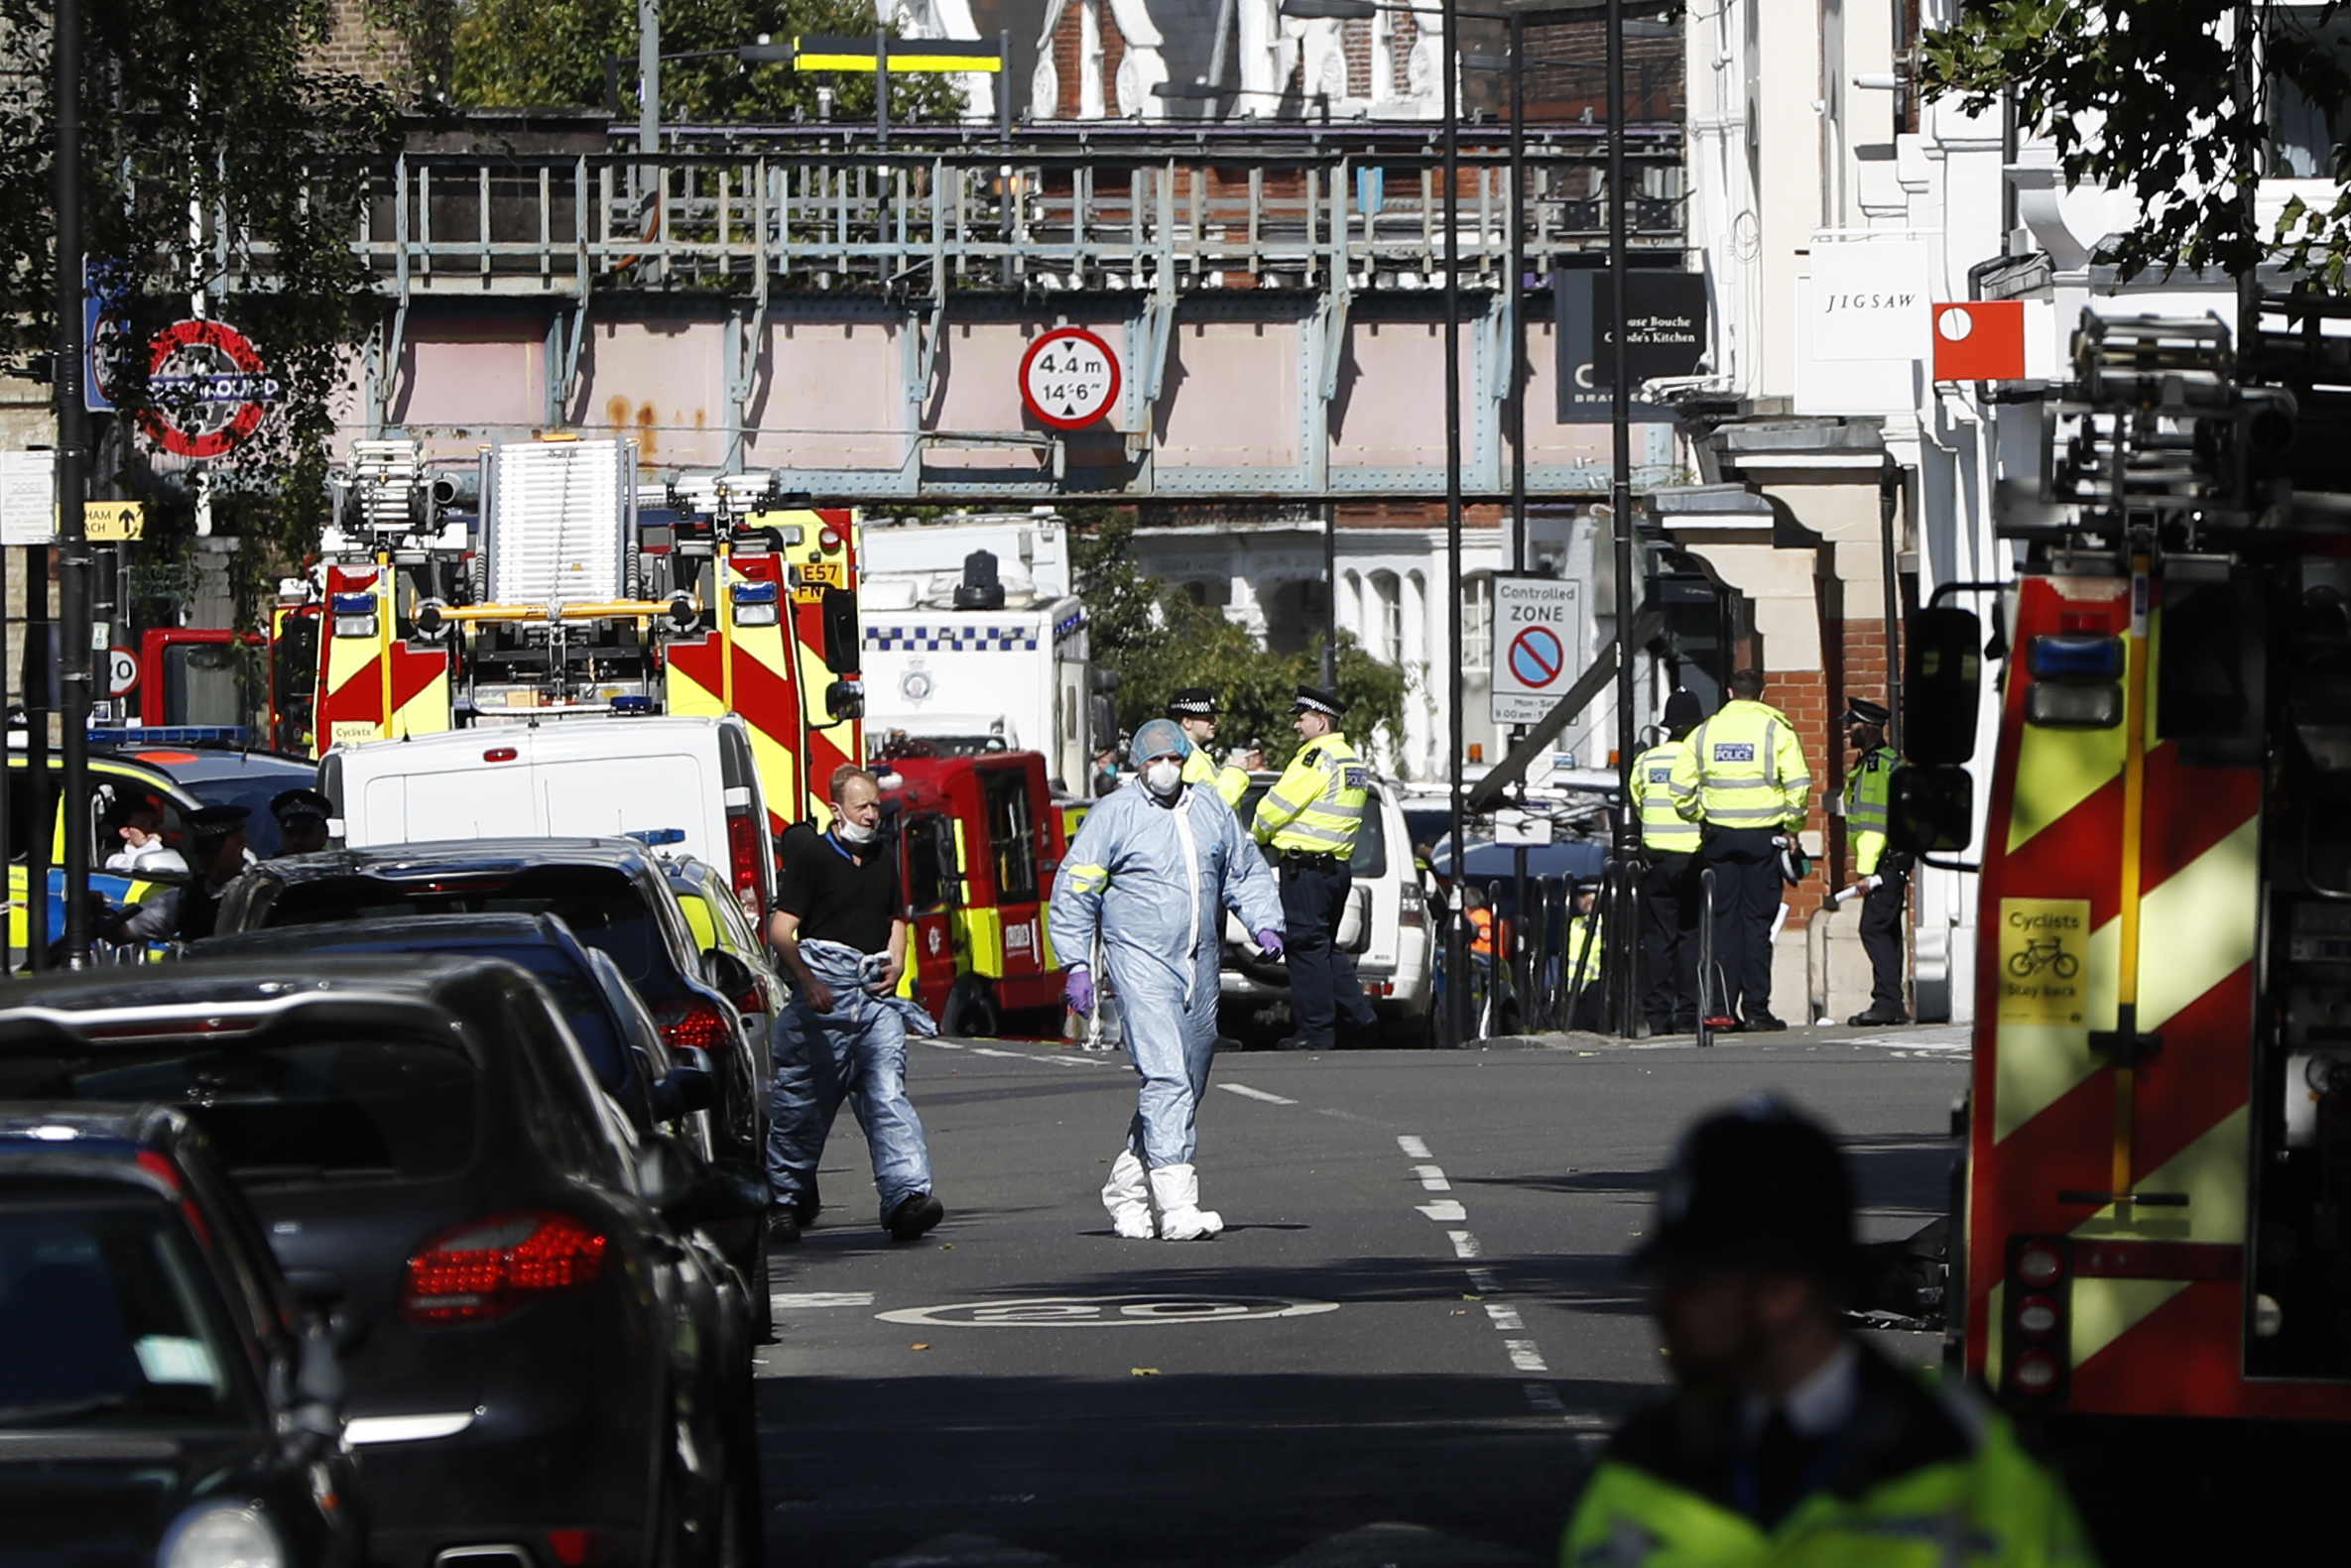 "<div class=""meta image-caption""><div class=""origin-logo origin-image none""><span>none</span></div><span class=""caption-text"">Police forensic officers walk within a cordon near where an incident happened, that police say they are investigating as a terrorist attack, at Parsons Green subway station. (Kirsty Wigglesworth/AP Photo)</span></div>"